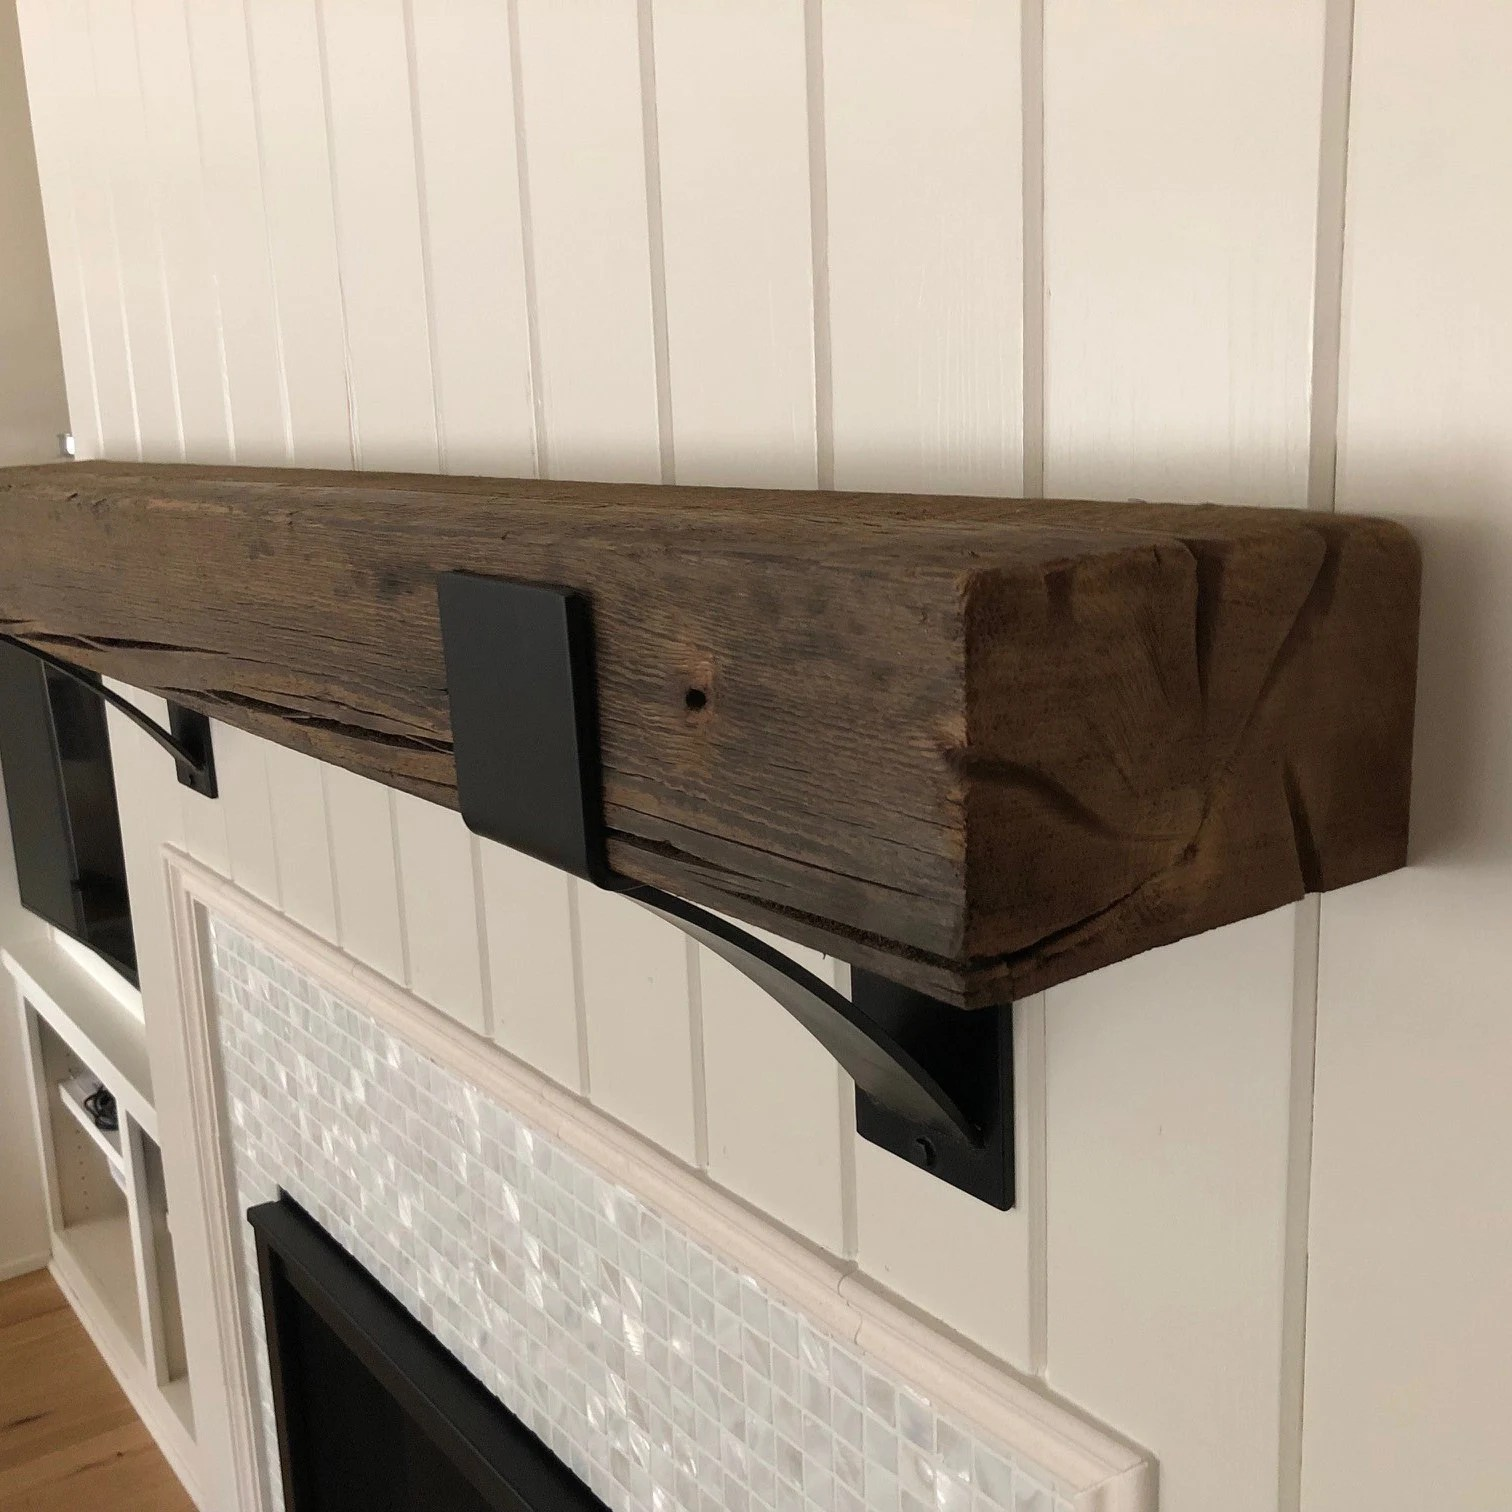 Farmhouse Mantel Brackets 4 Wide With 3 Curved Support Bar Farmhouse Mantel Brackets 4 Wide With 3 Curved Support Bar